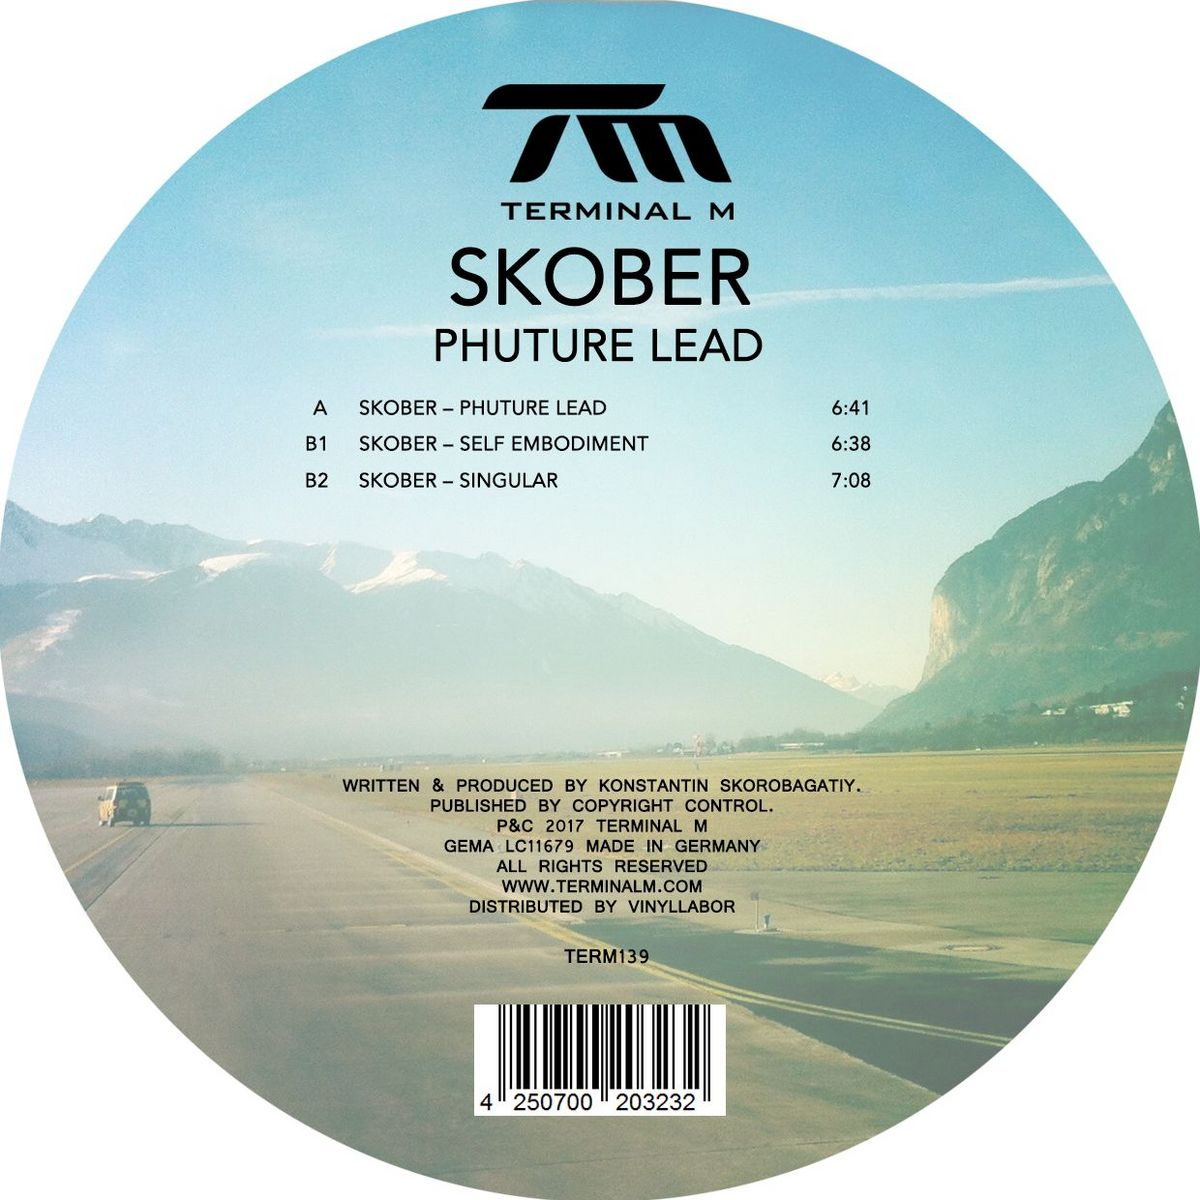 Skober On Twitter I M Happy To Let You Know What My Second Release On Terminalm Is Available On Vinyl Check It Out Https T Co Xwhcxpz2sq Https T Co Cxom56itgb